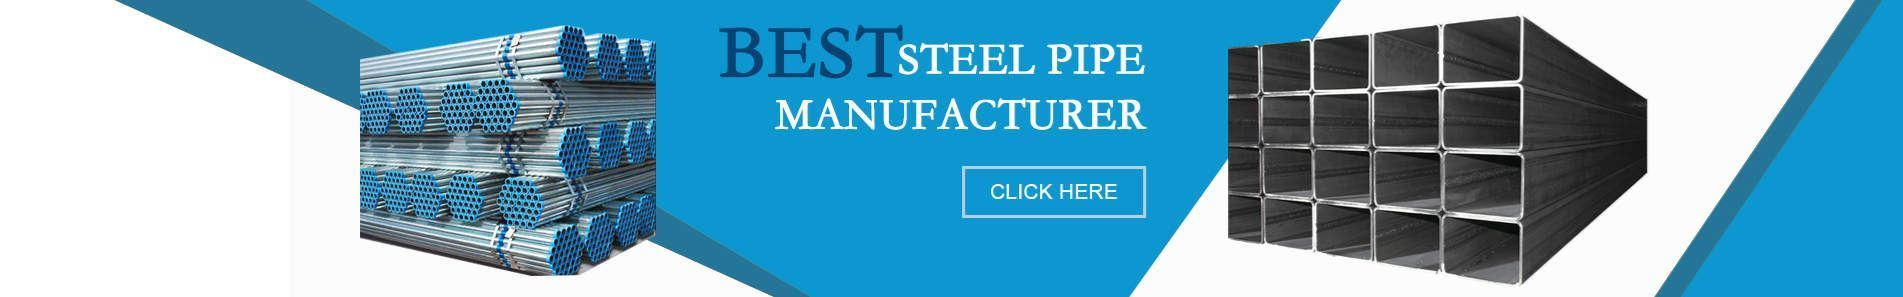 welded-stainless-steel-pipe